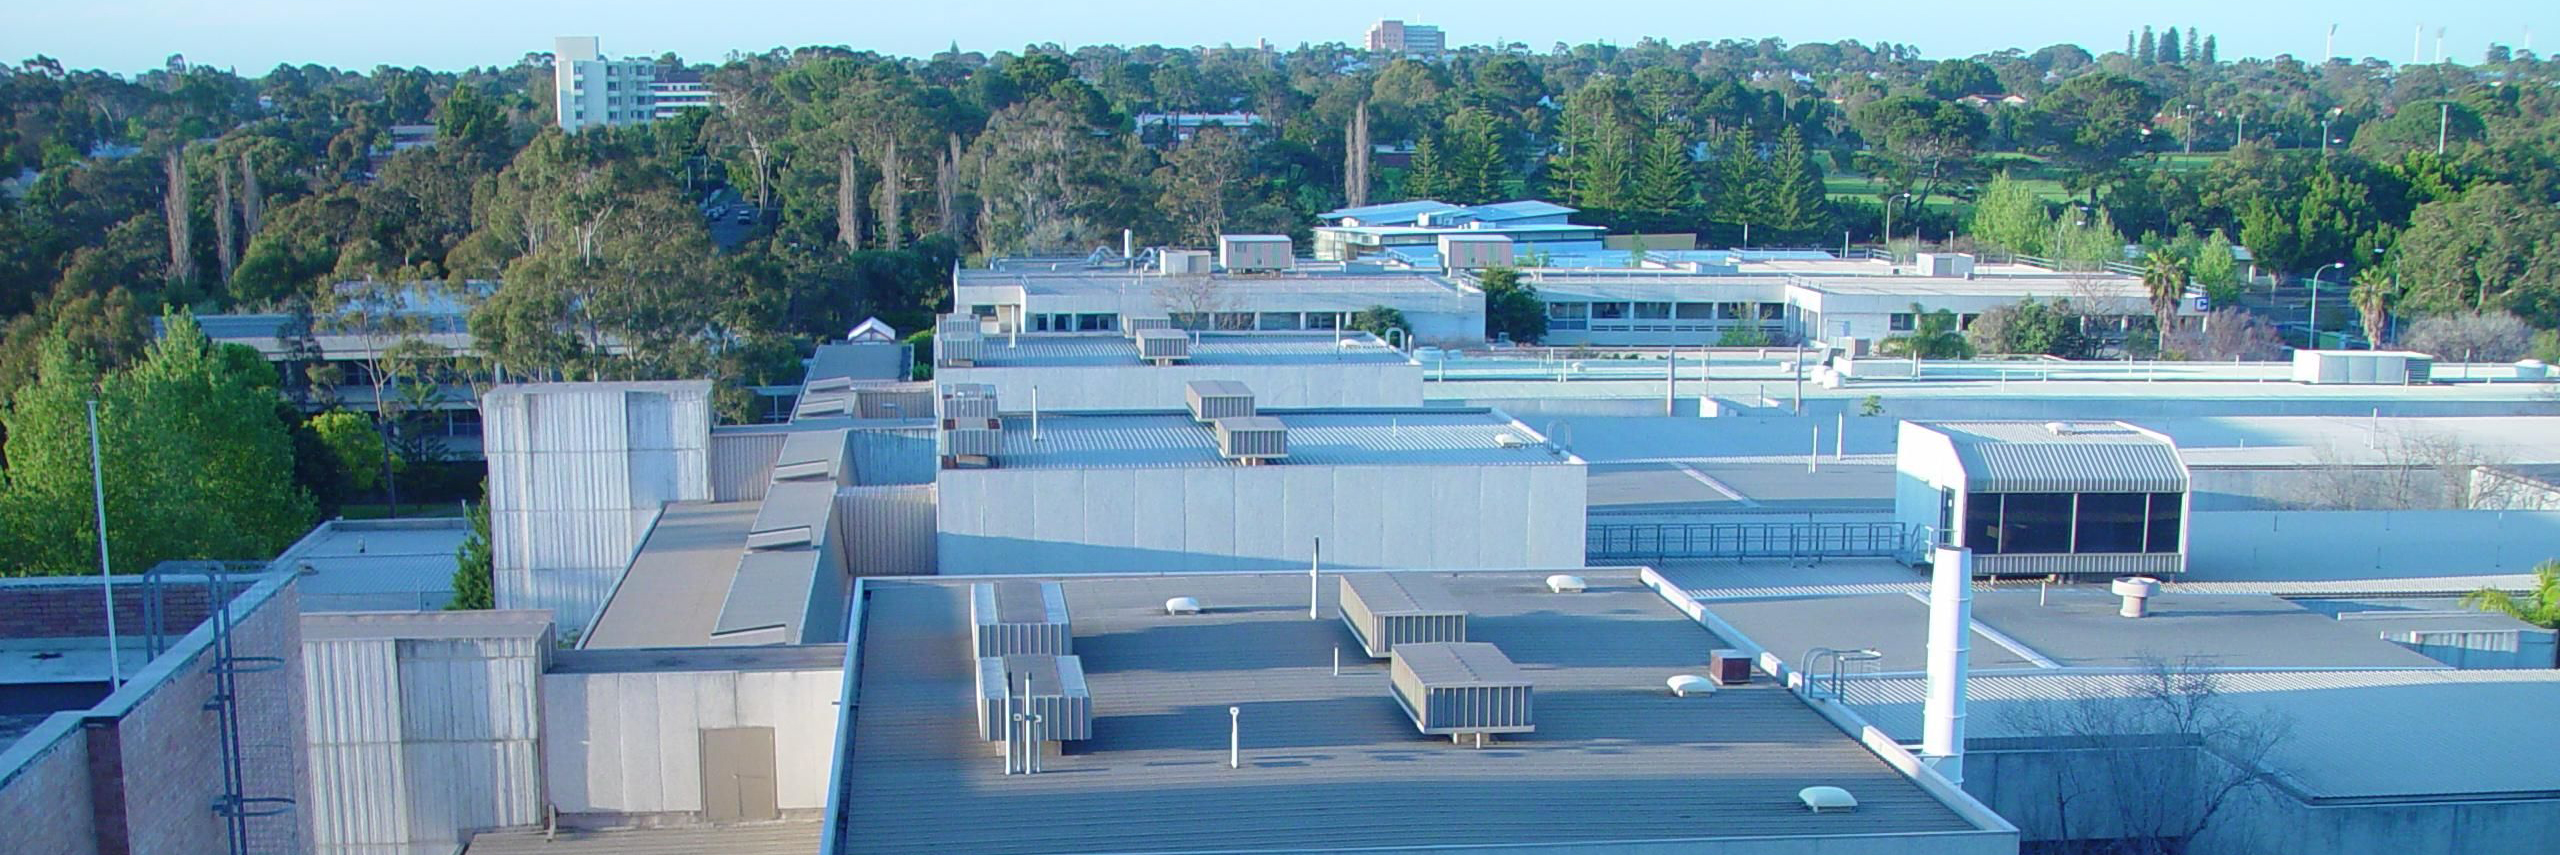 roofs-of-sir-charles-gairdner-hospital